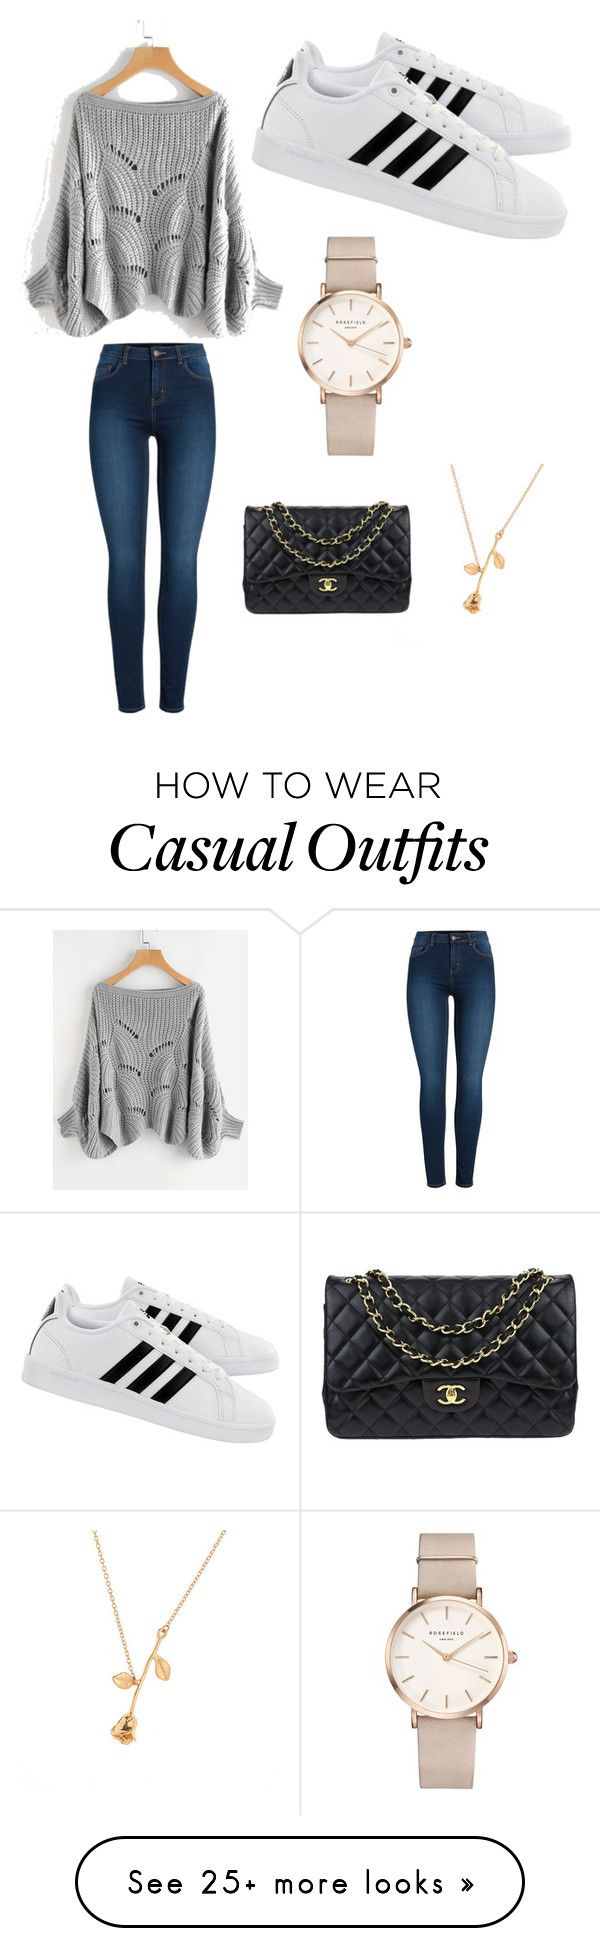 """Casual yet boujee"" by amber-doyle-i on Polyvore featuring Pieces, adidas, ROSEFIELD and Chanel"